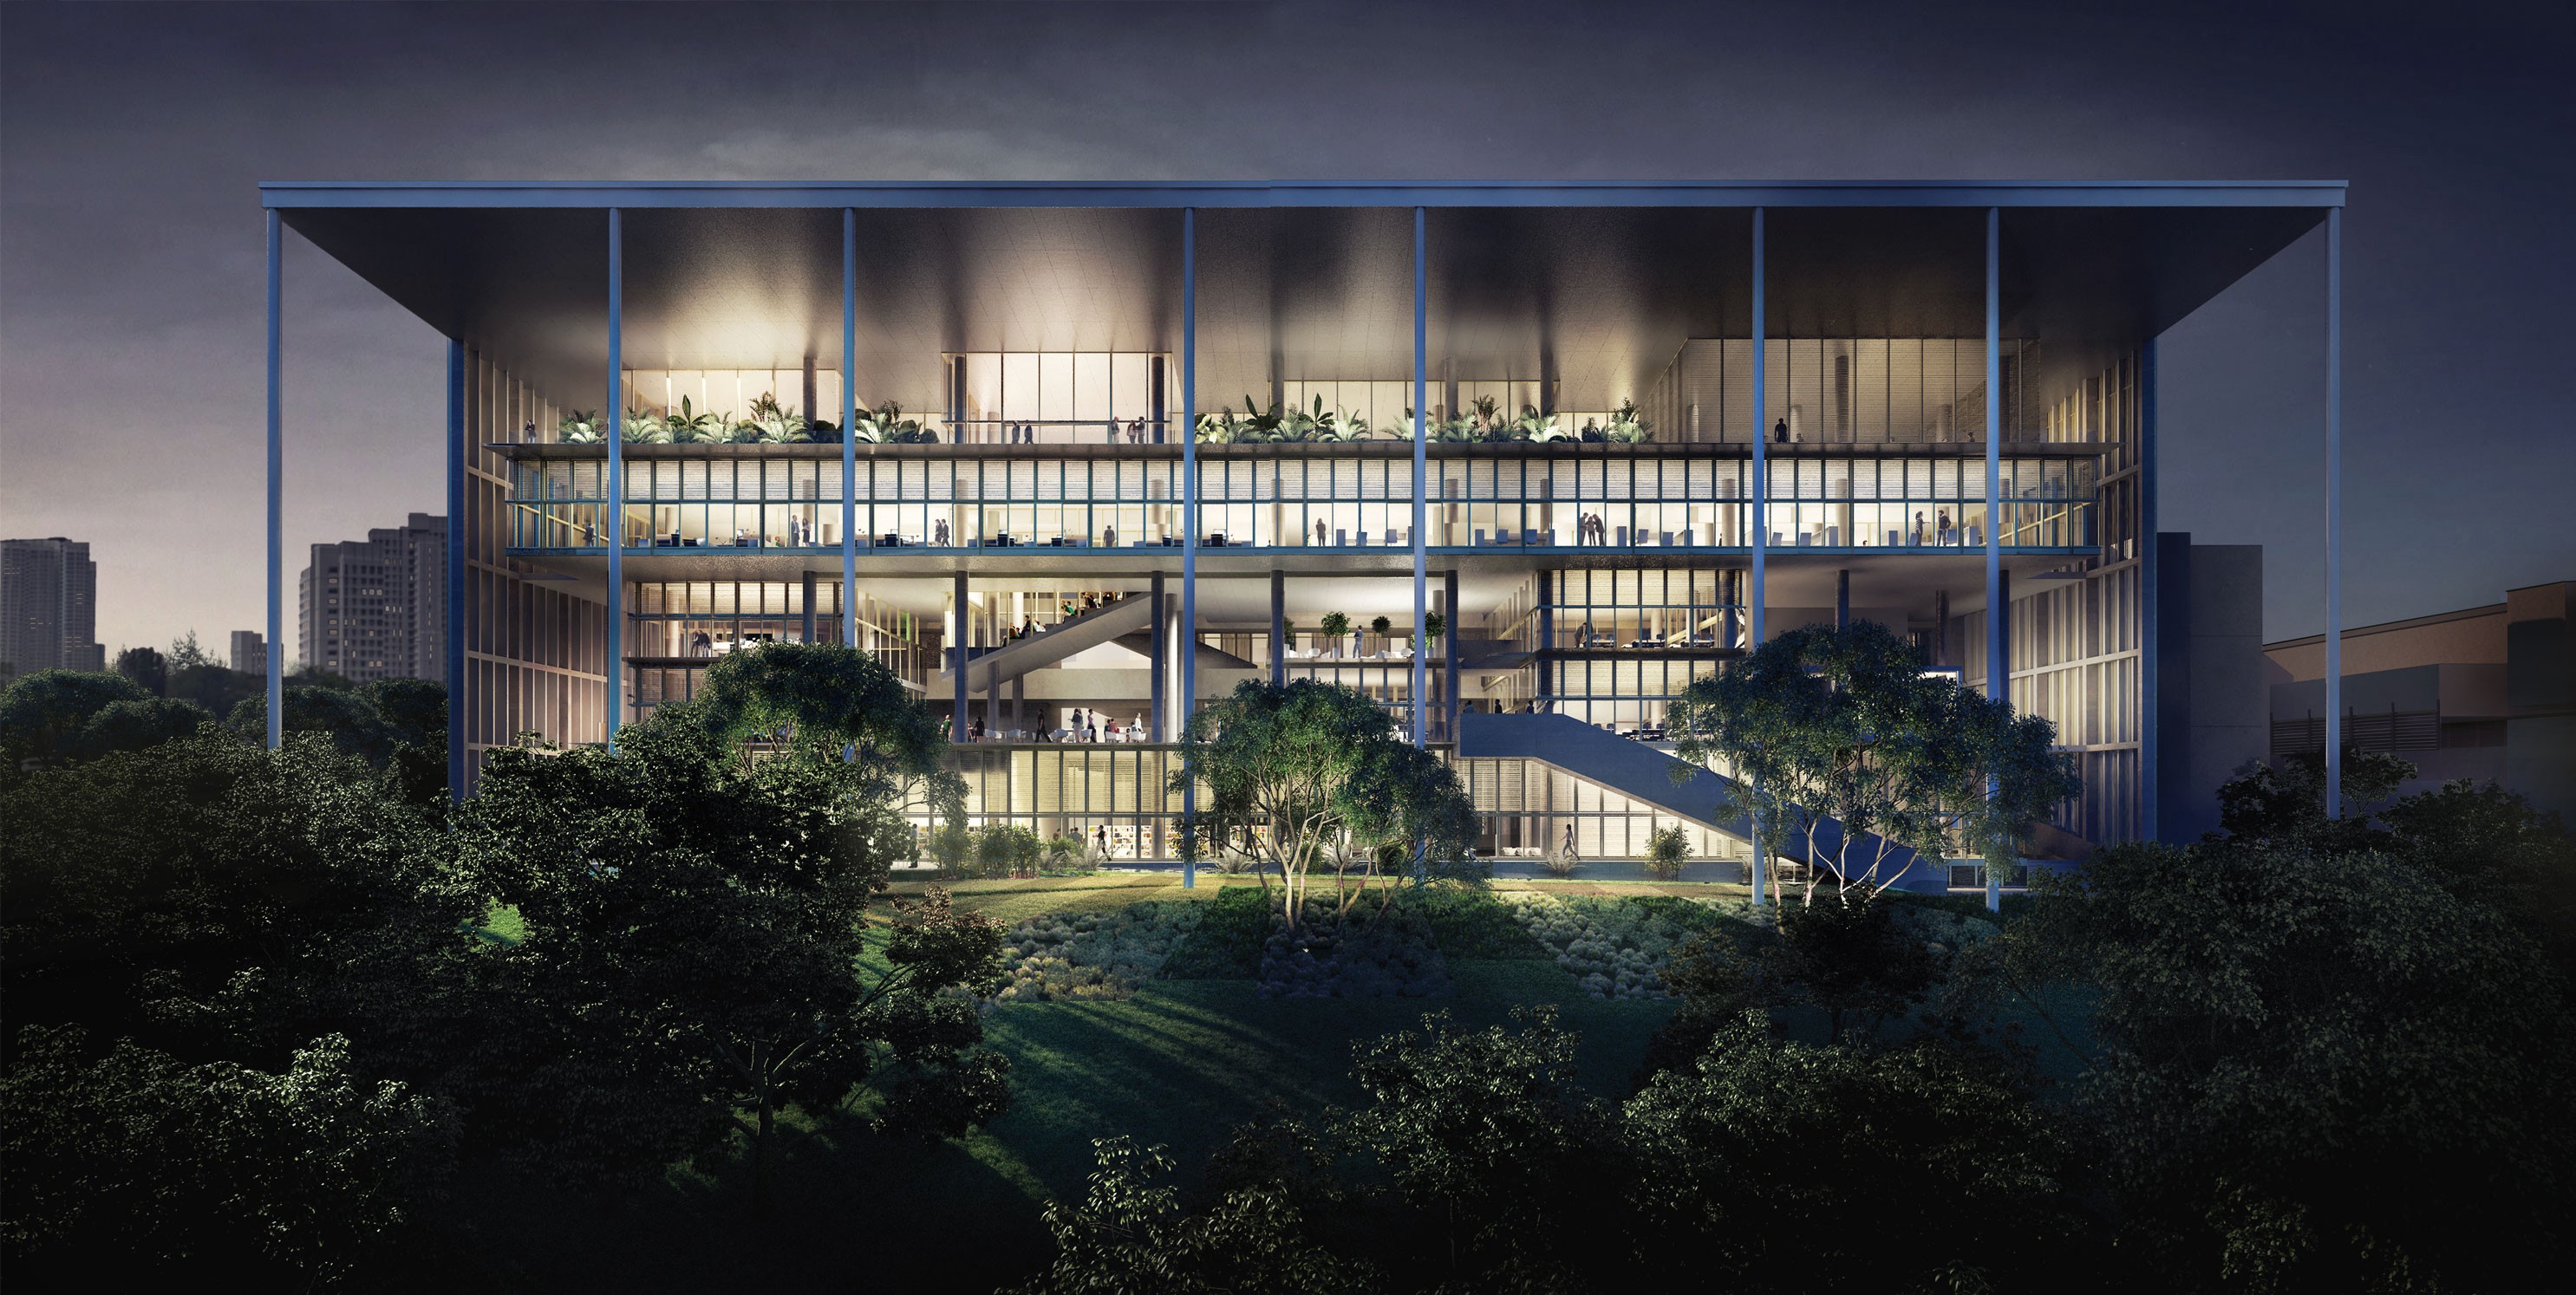 SDE4 | School of Design and Environment, National University of Singapore (NUS), Singapore | Surbana Jurong Consultants